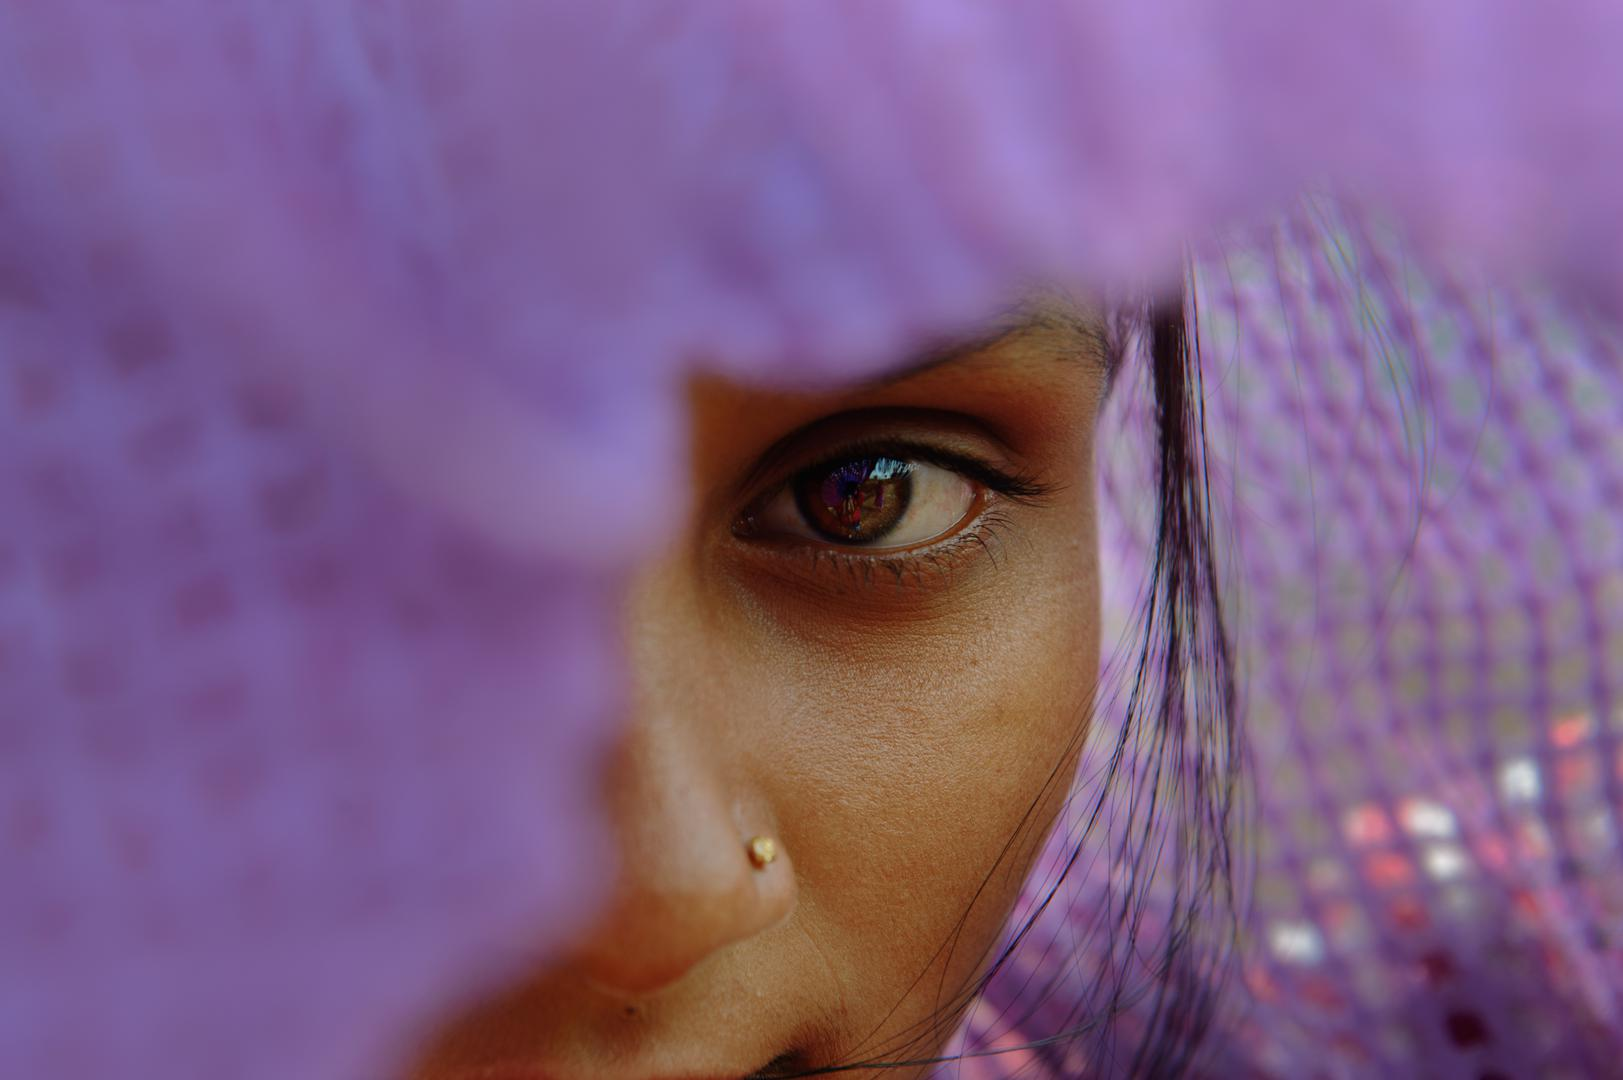 Barriers To Justice And Support Services For Sexual Assault Survivors In India Hrw